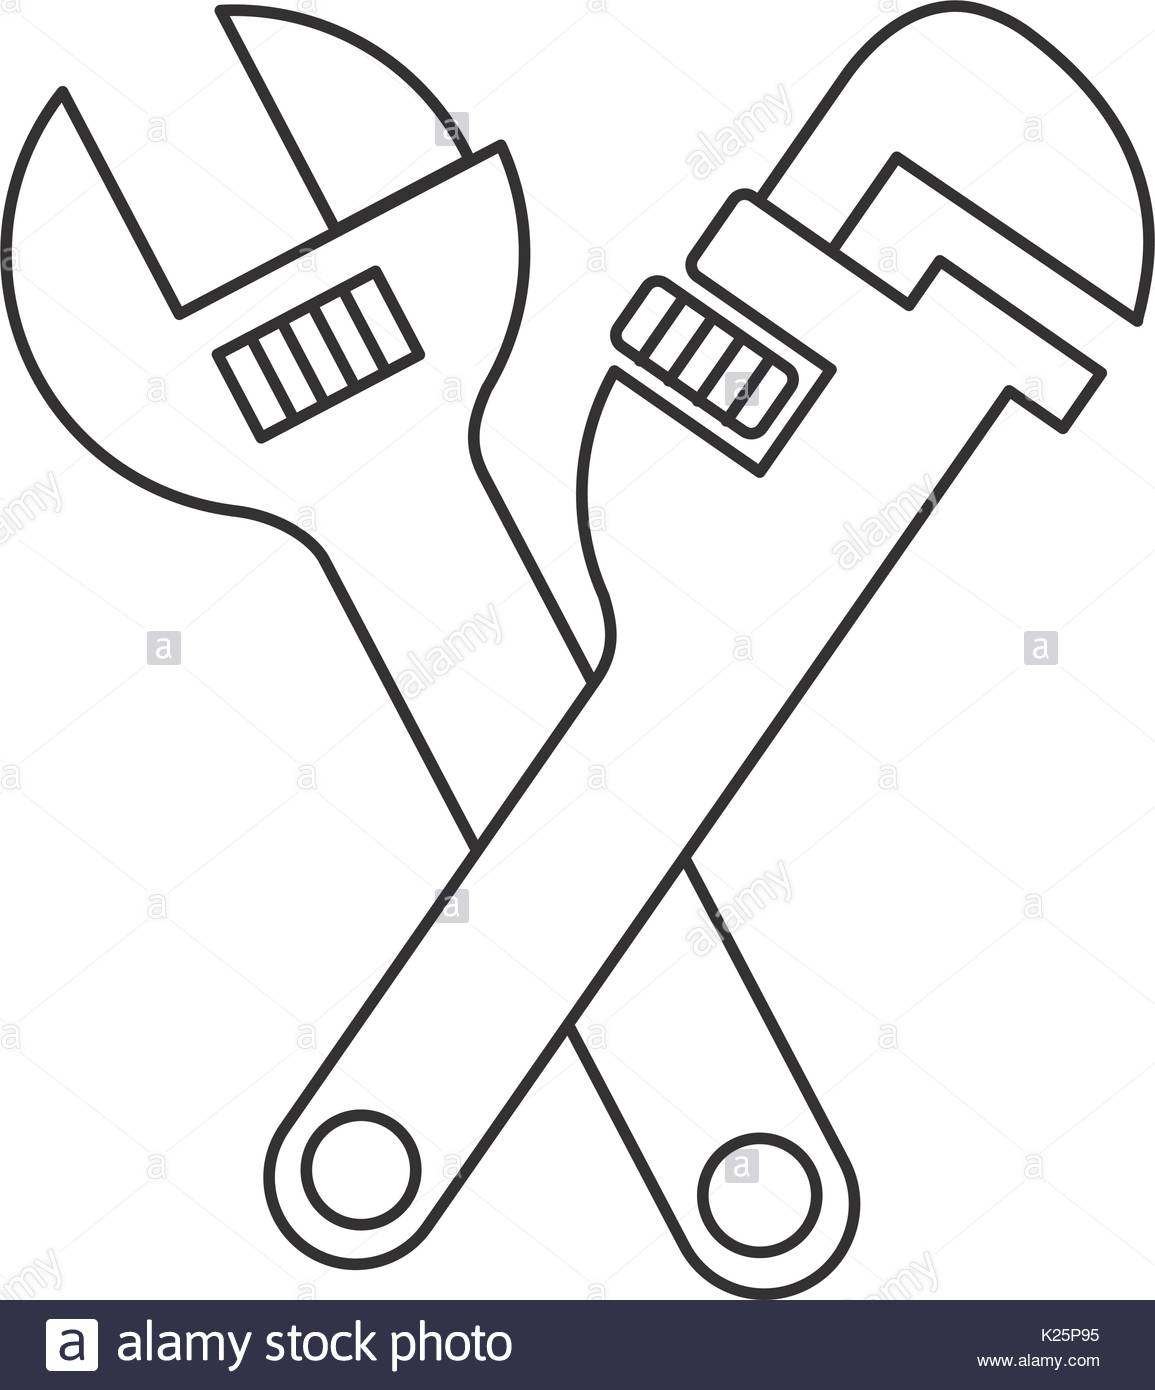 1155x1390 Pipe Wrench Stock Vector Images